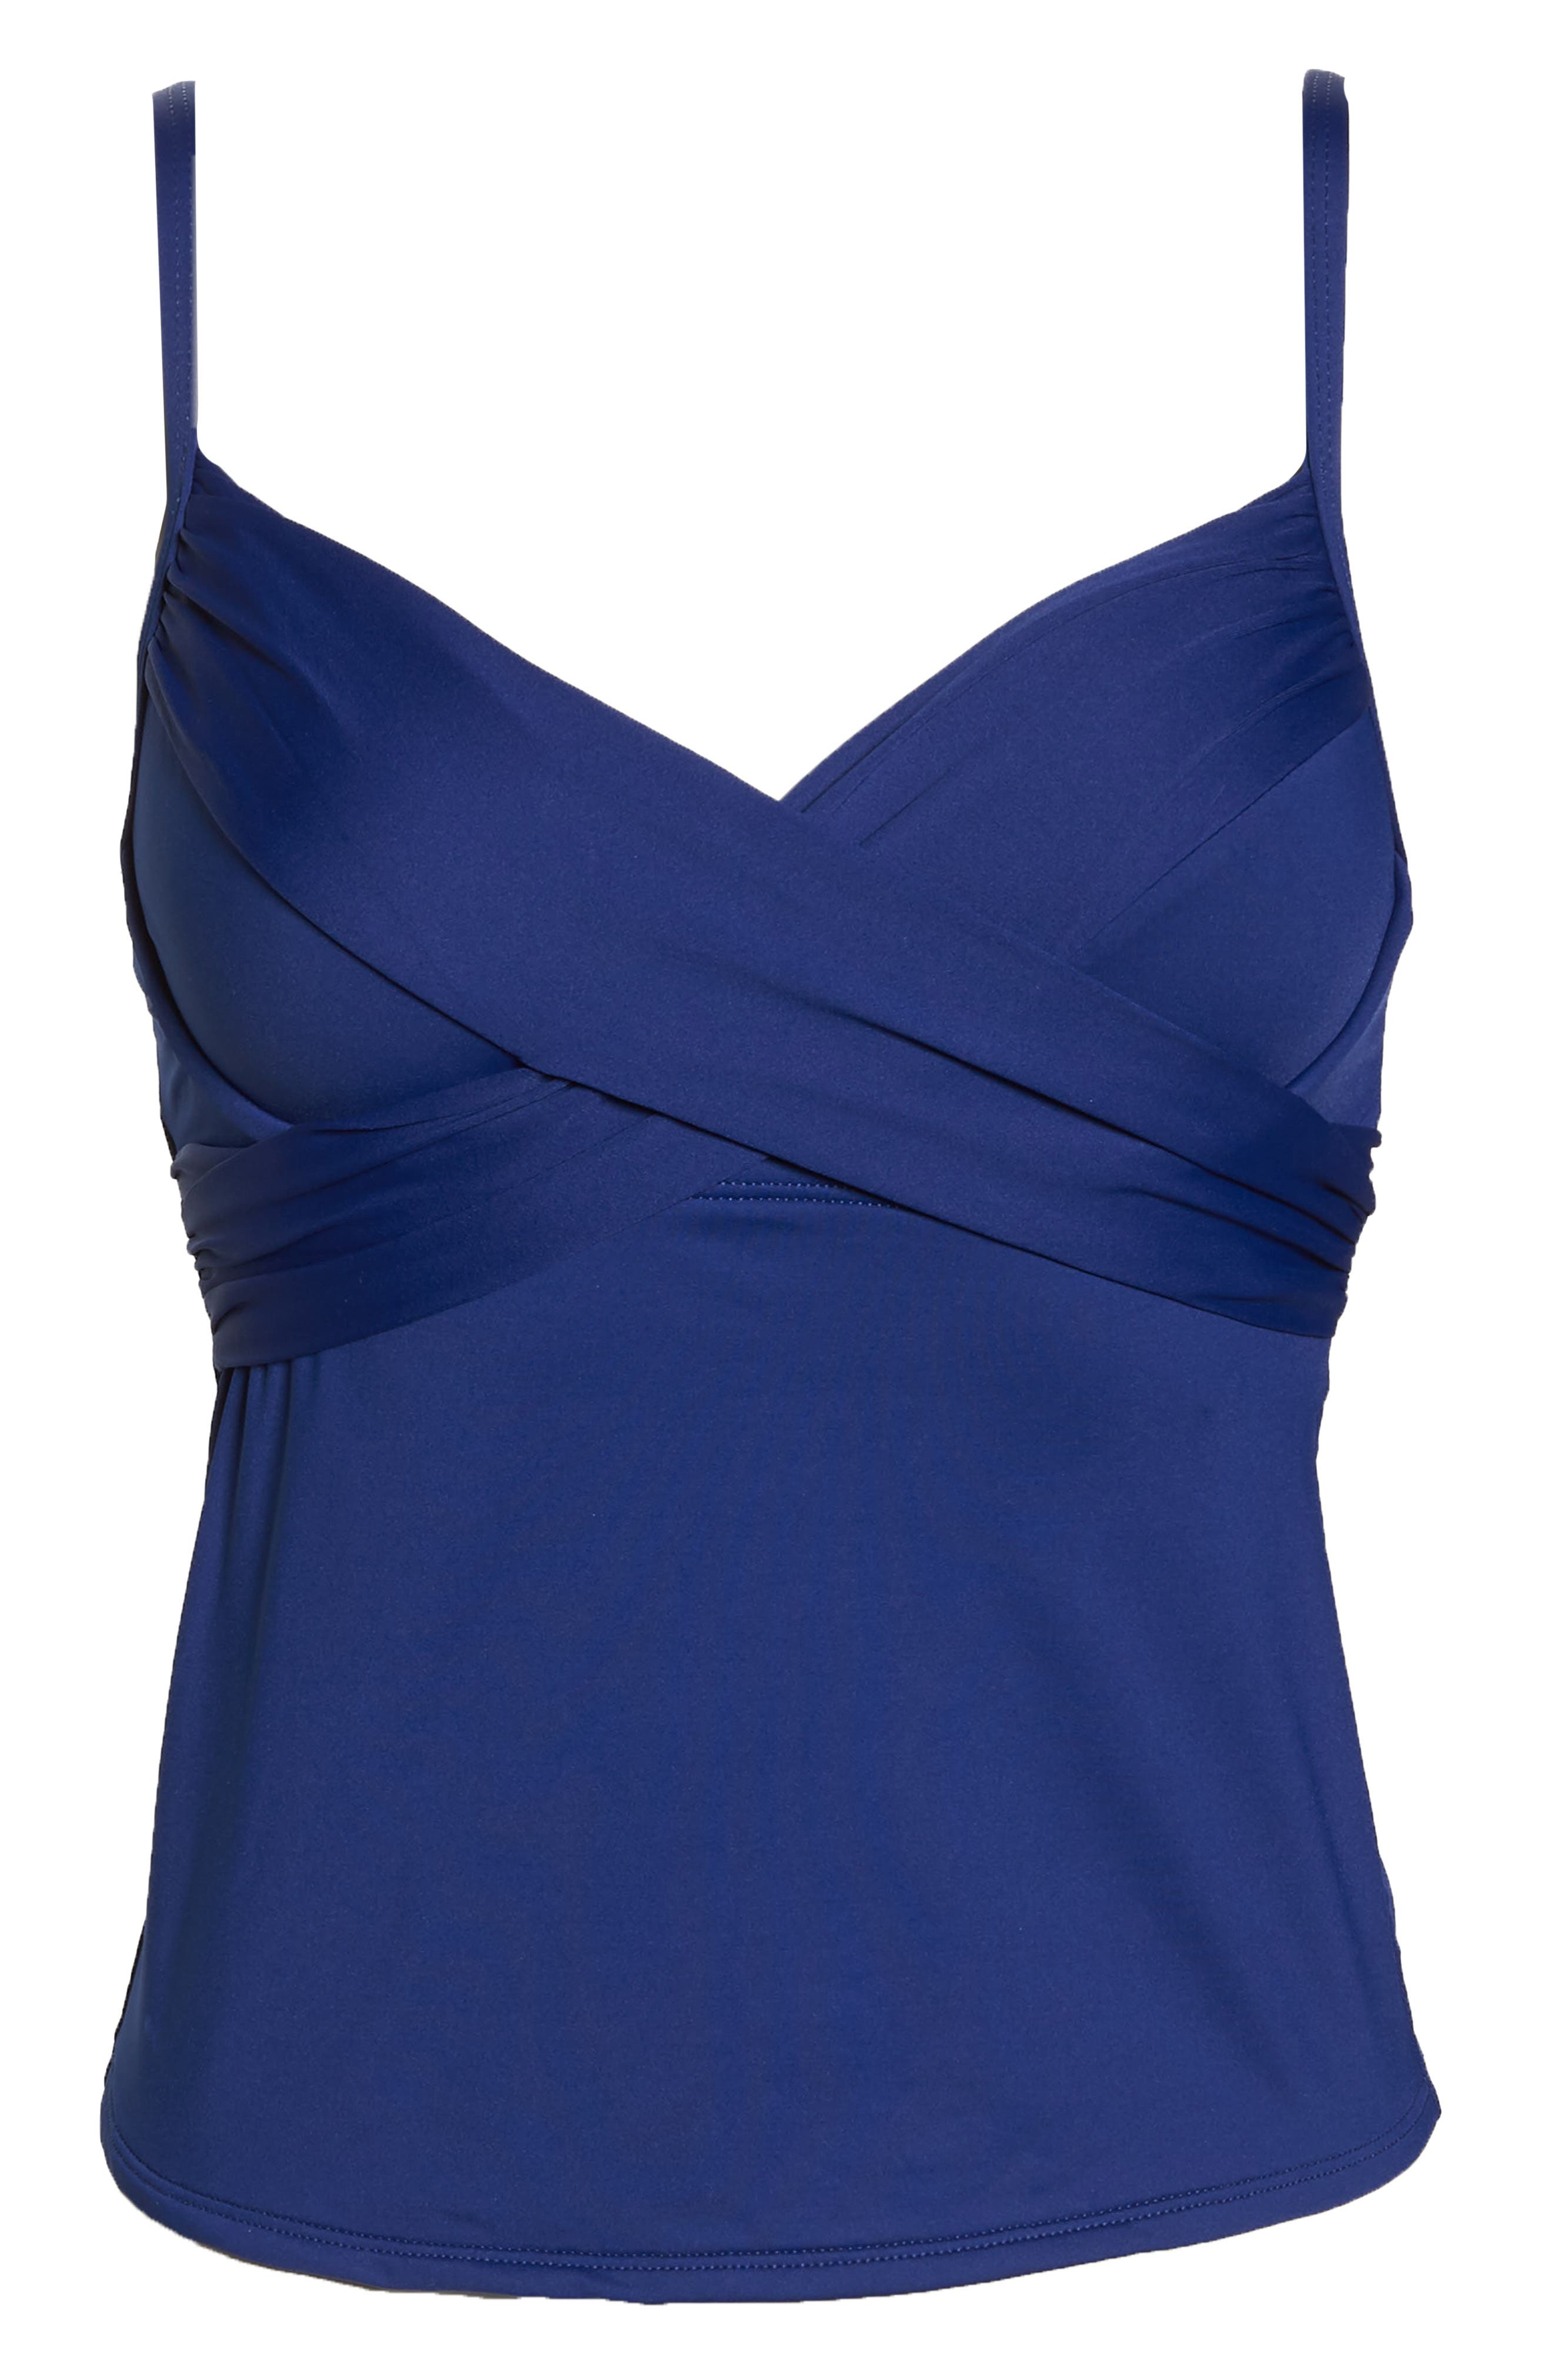 Island Goddess Underwire Tankini Top,                             Alternate thumbnail 6, color,                             409